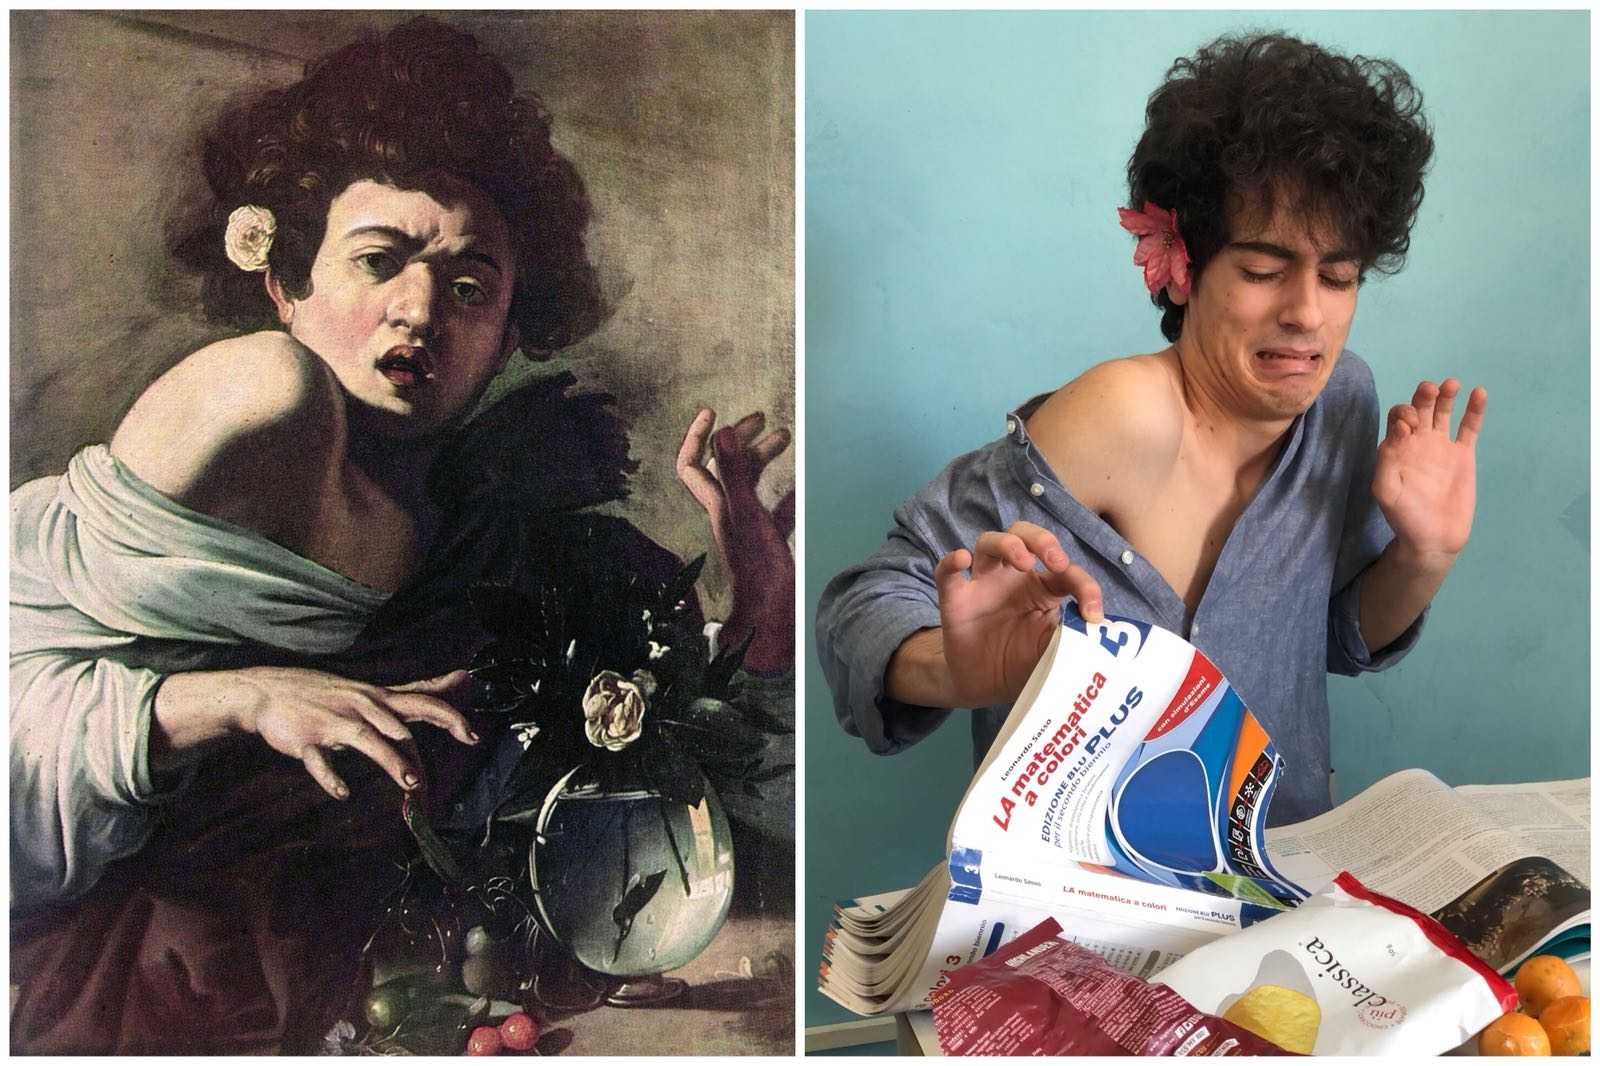 Boy botten by a lizard Caravaggio